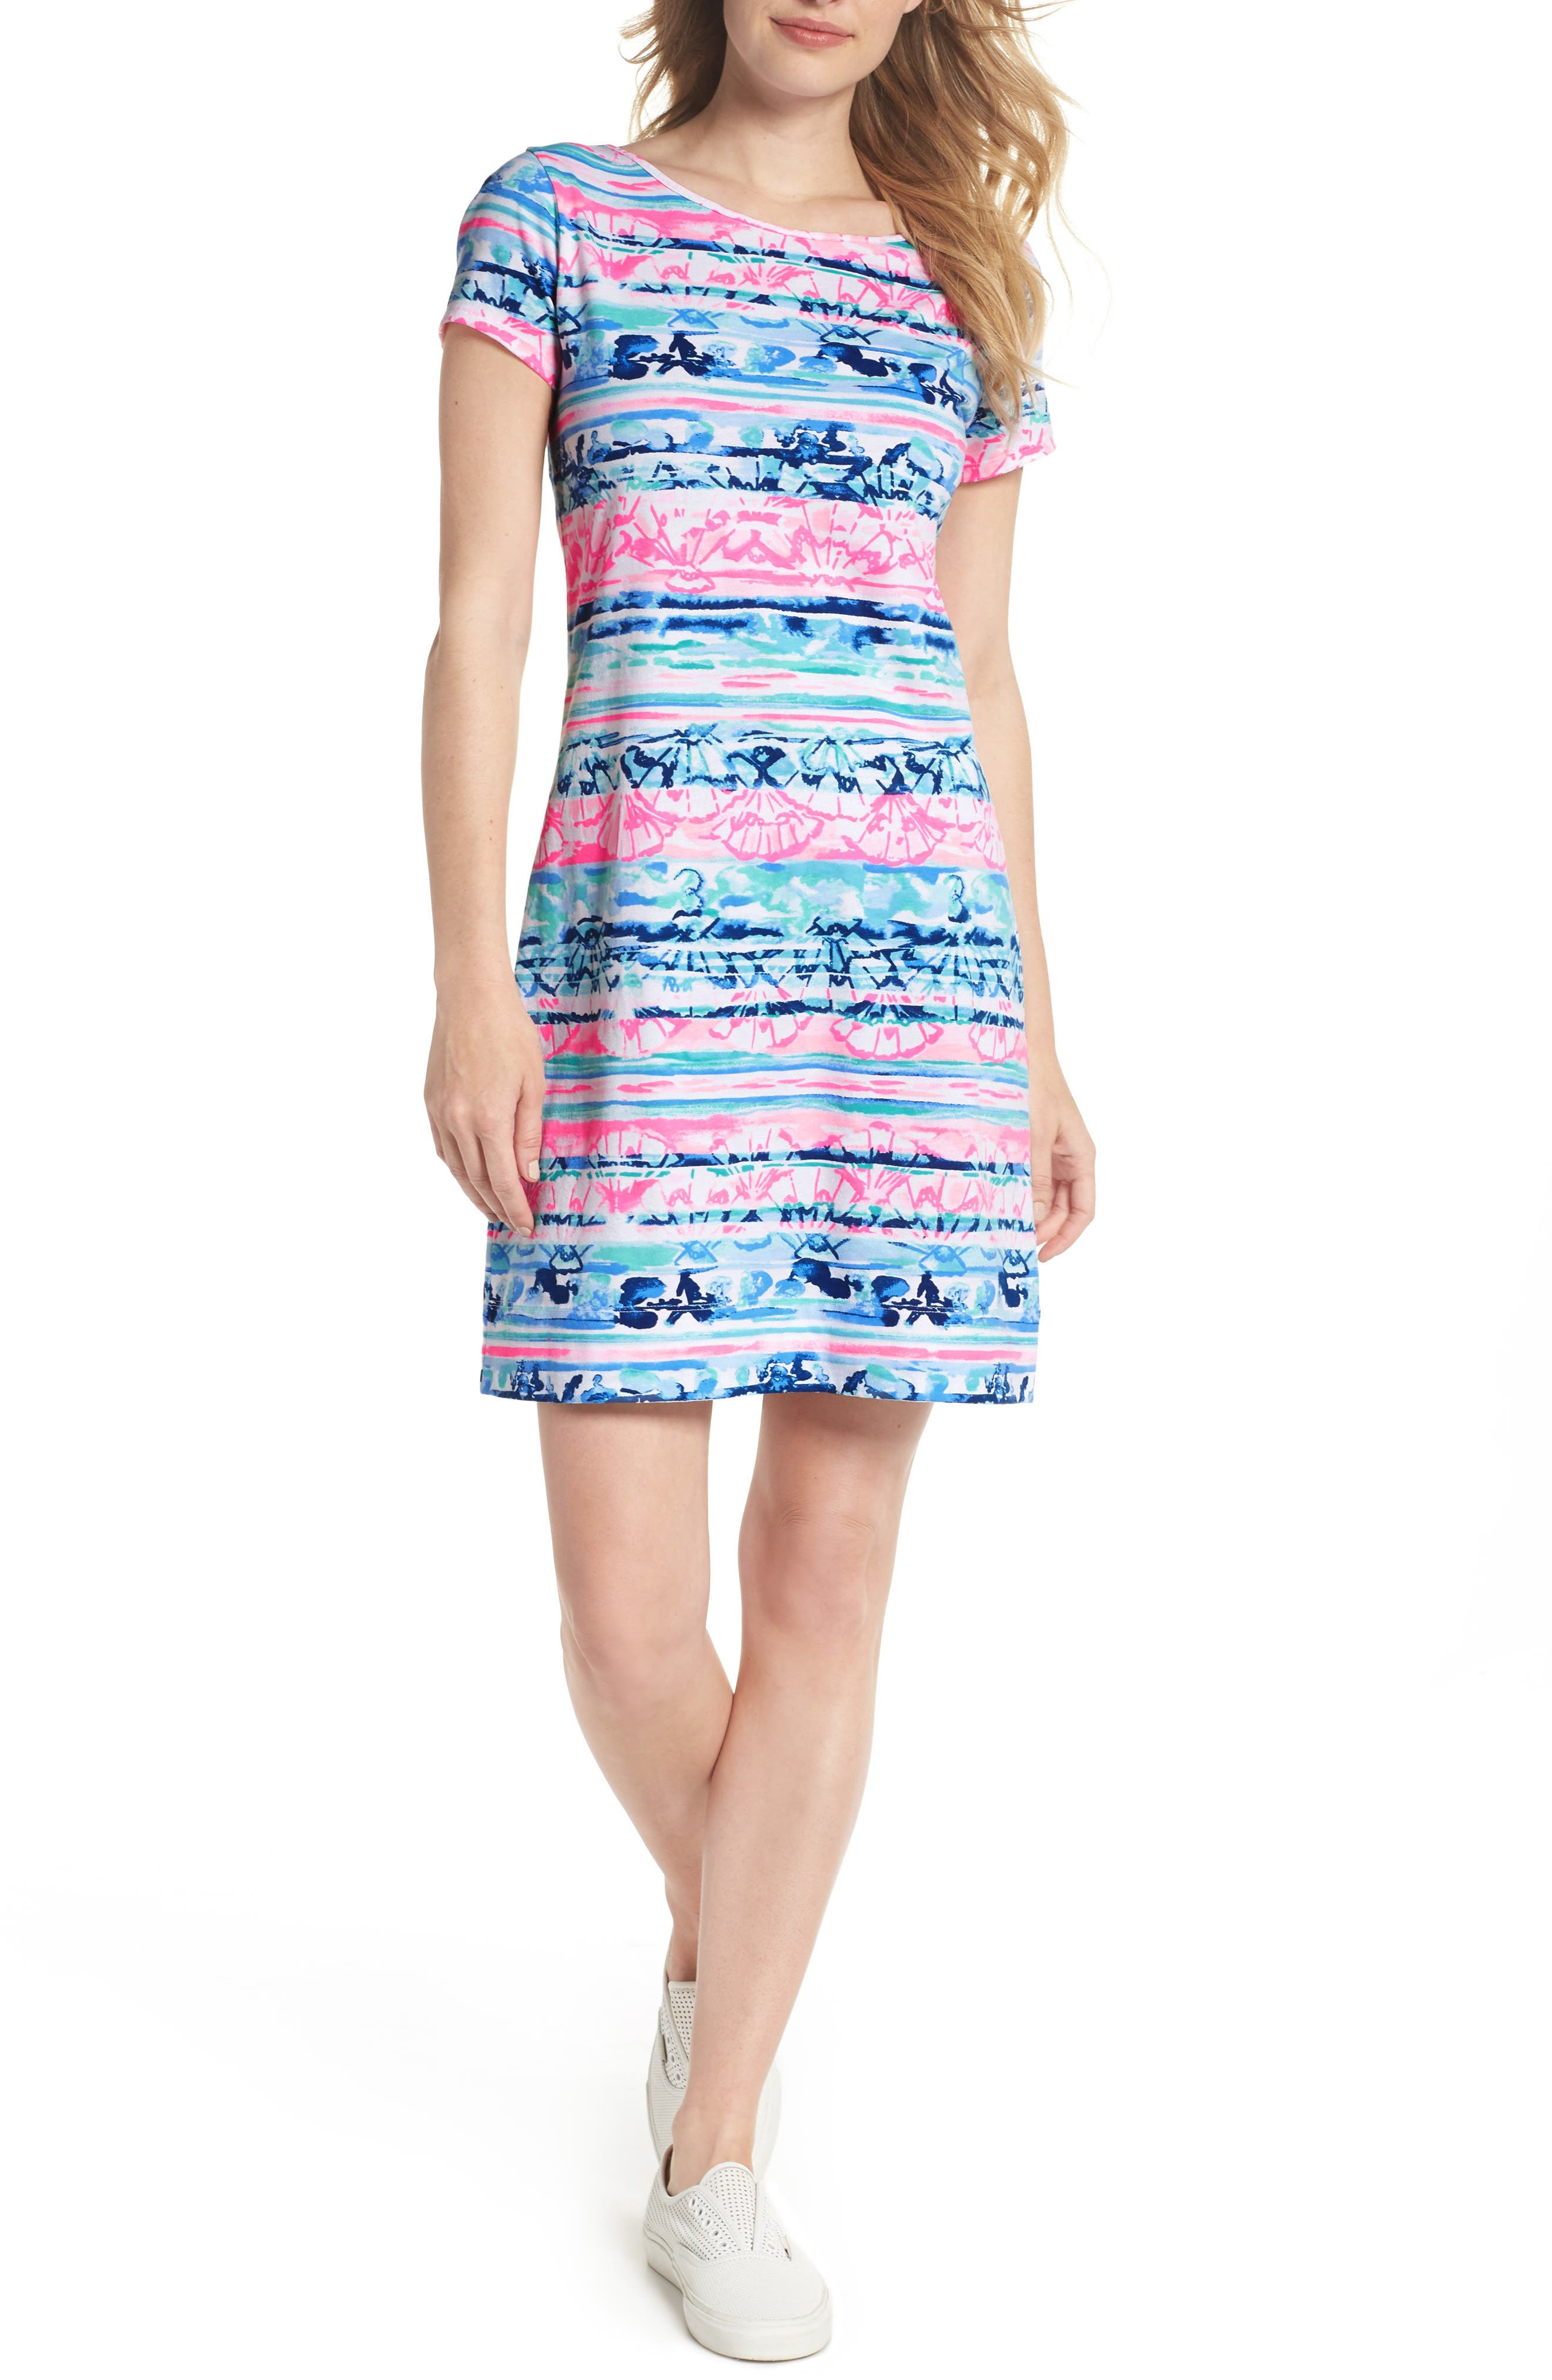 Marlowe T-Shirt Dress,                             Main thumbnail 1, color,                             MULTI A WAVE FROM IT